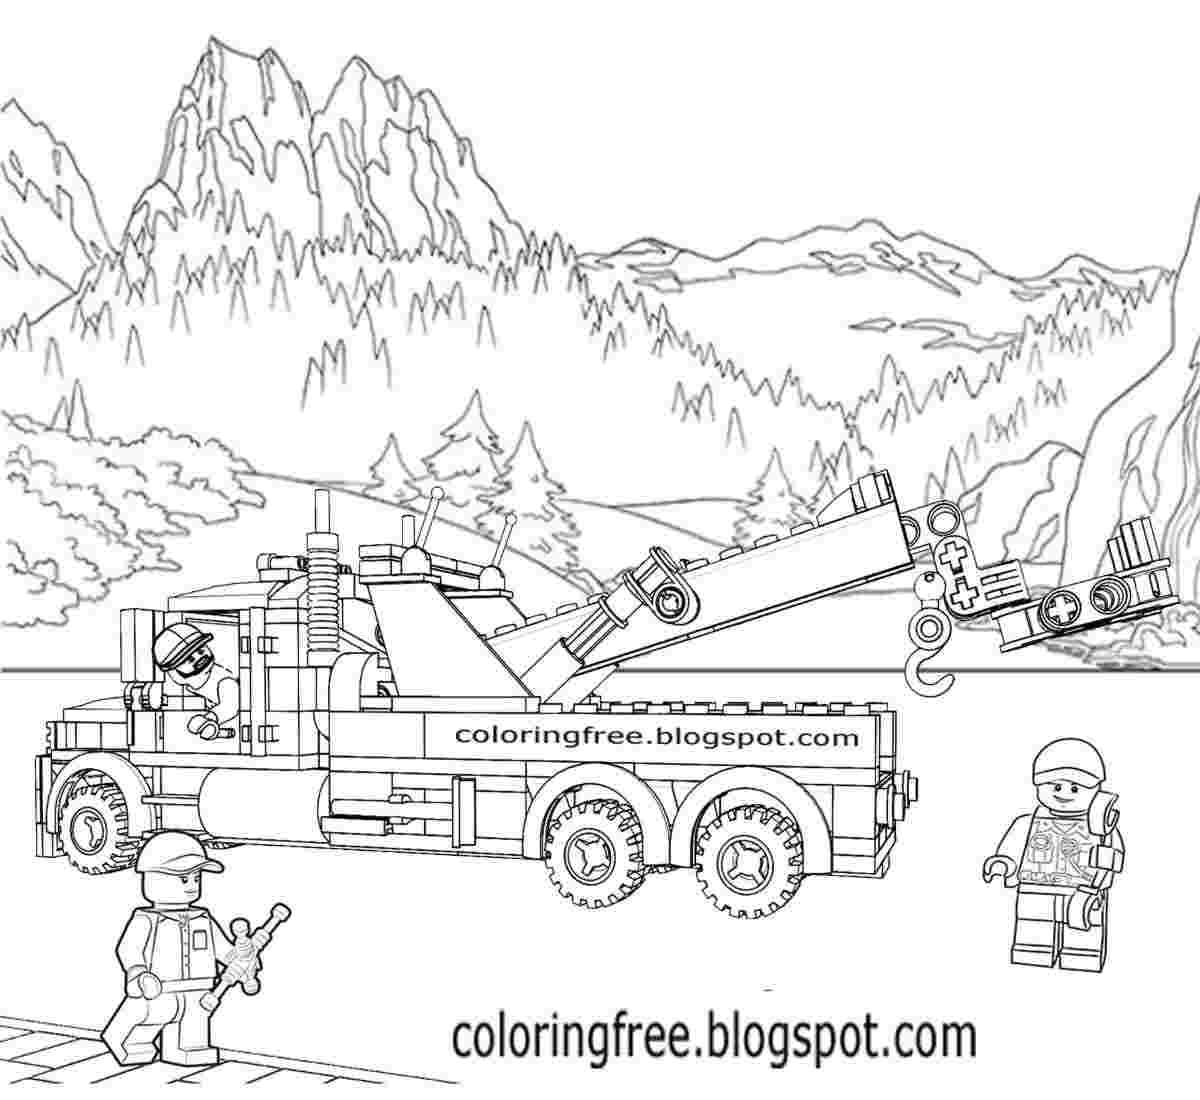 Bulldozer Coloring Page Pages Of Lego City 60074 Activities Genesis 1 Baby Pigs Printable Tie Smiley Face Realistic Lion Witch For Adults Cute Halloween